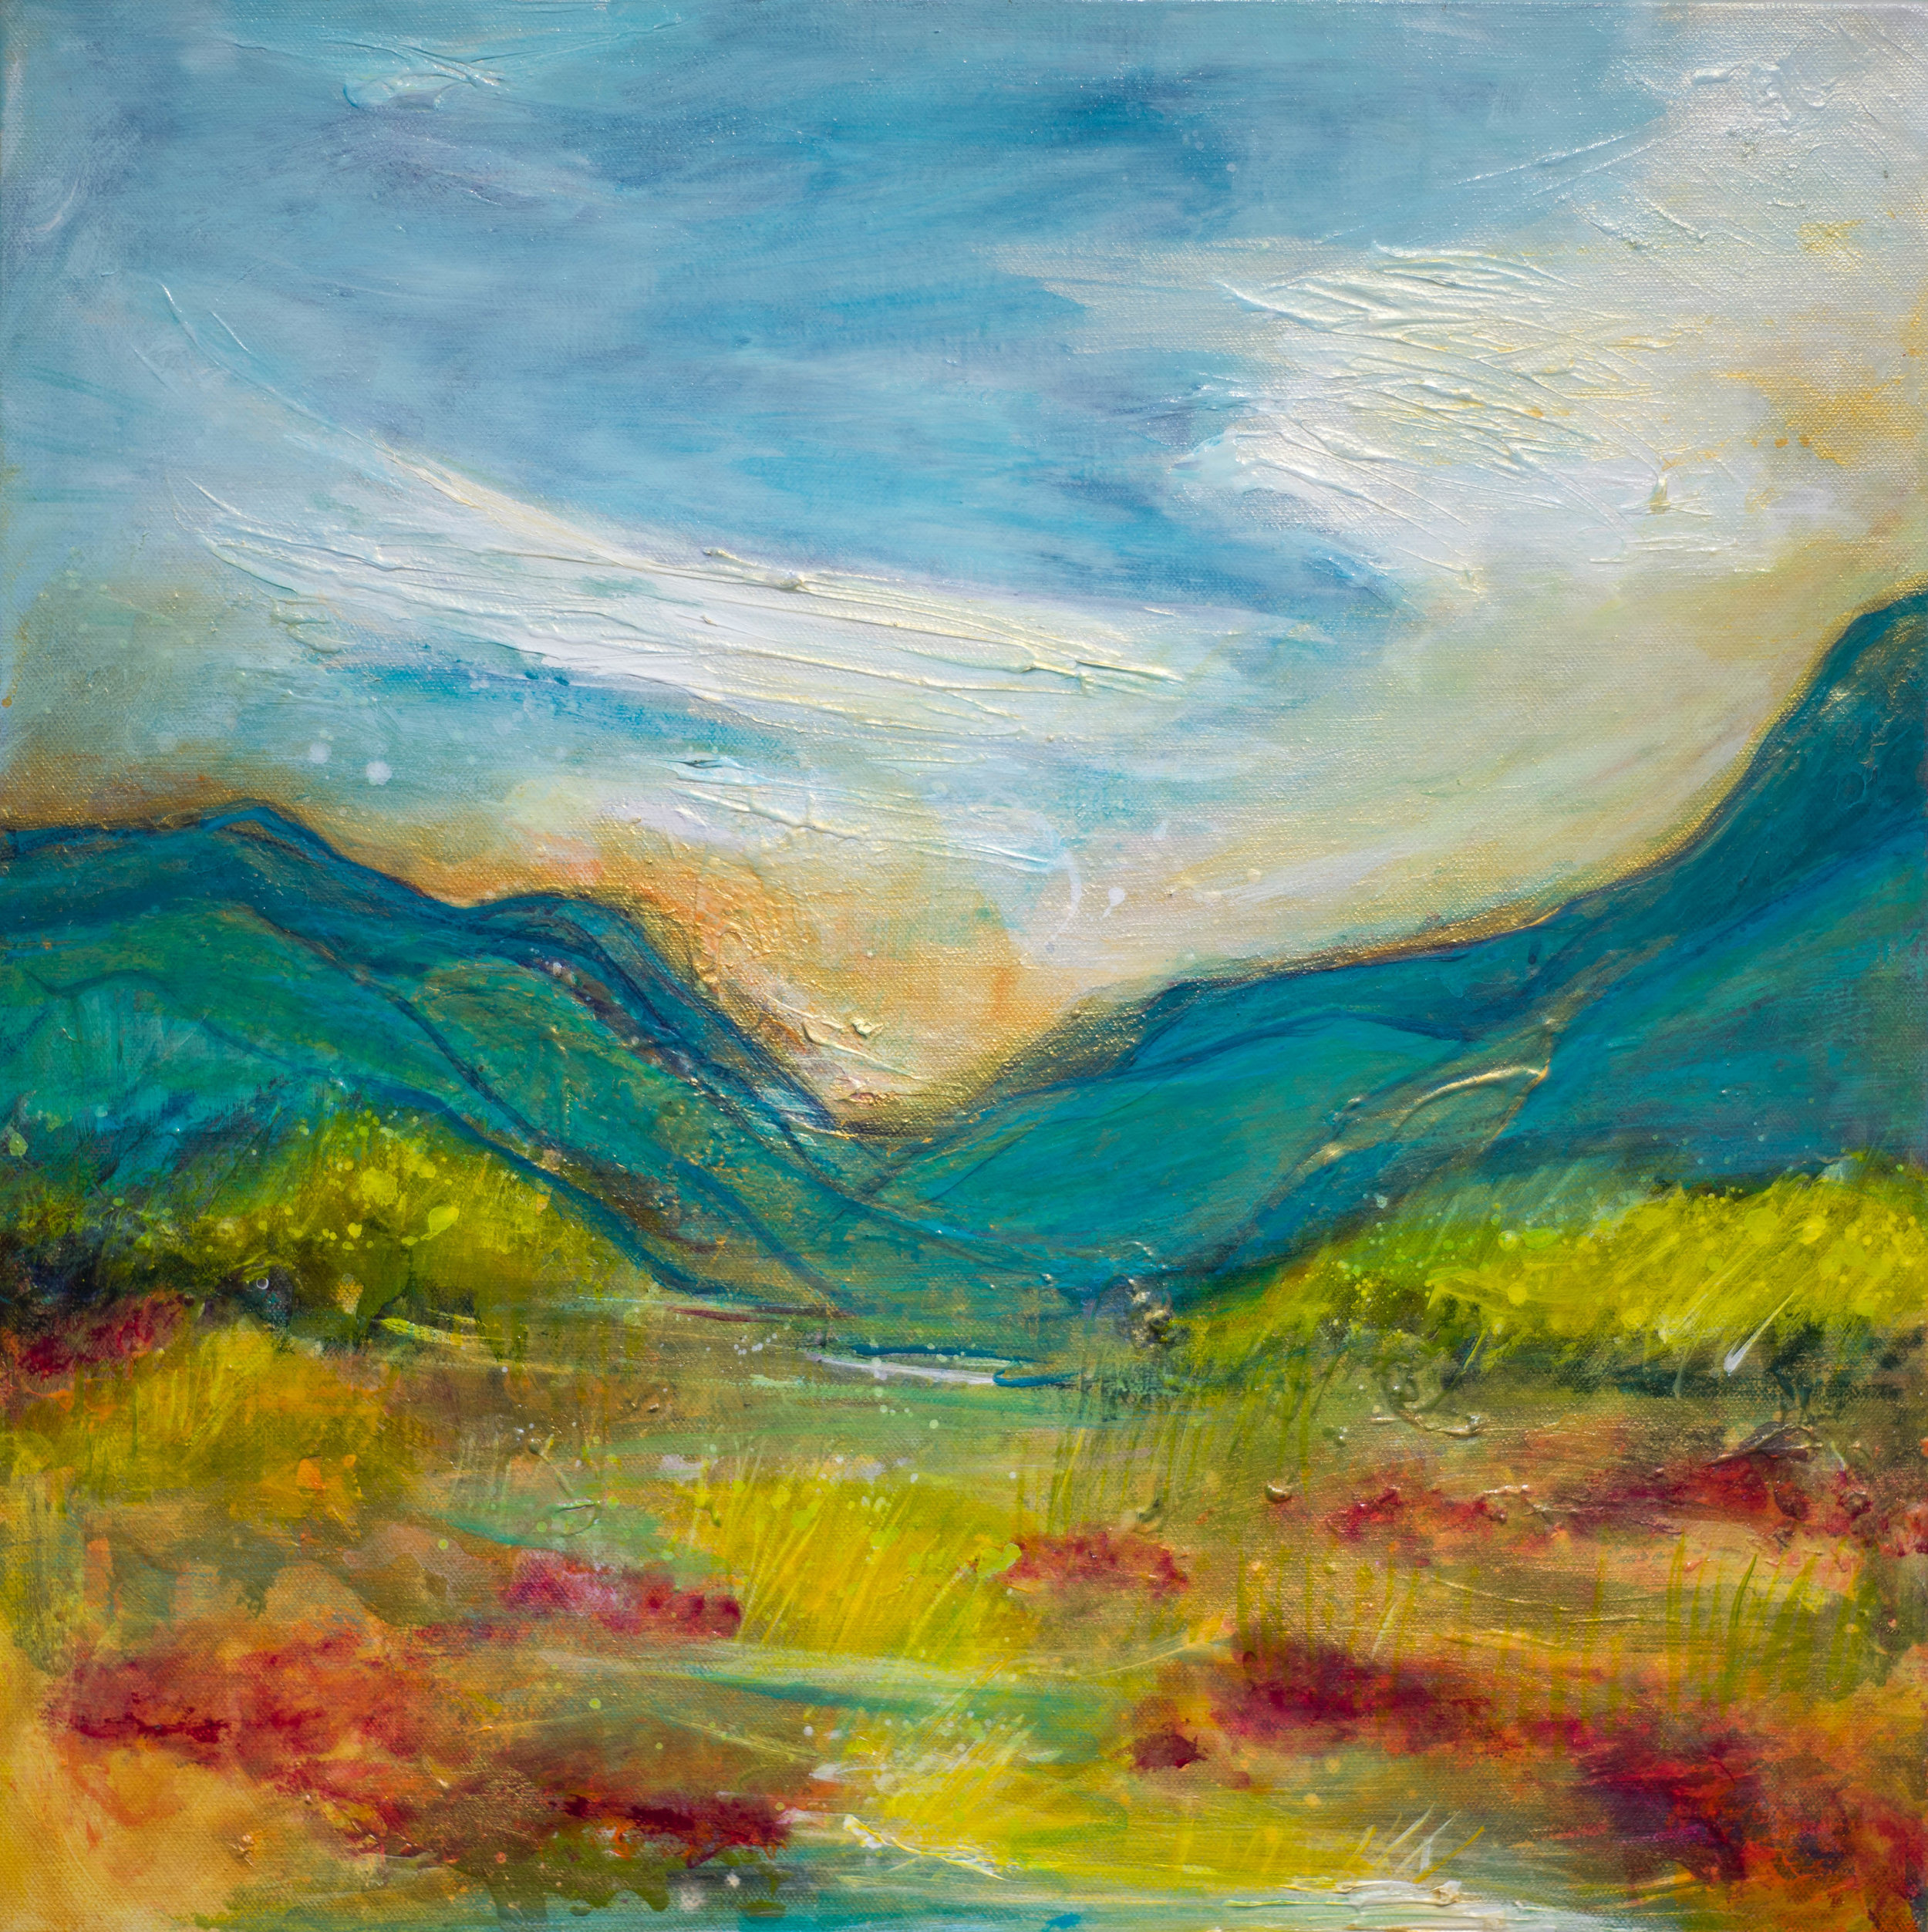 - Many Layers of Blue Sky (20x20) $1500